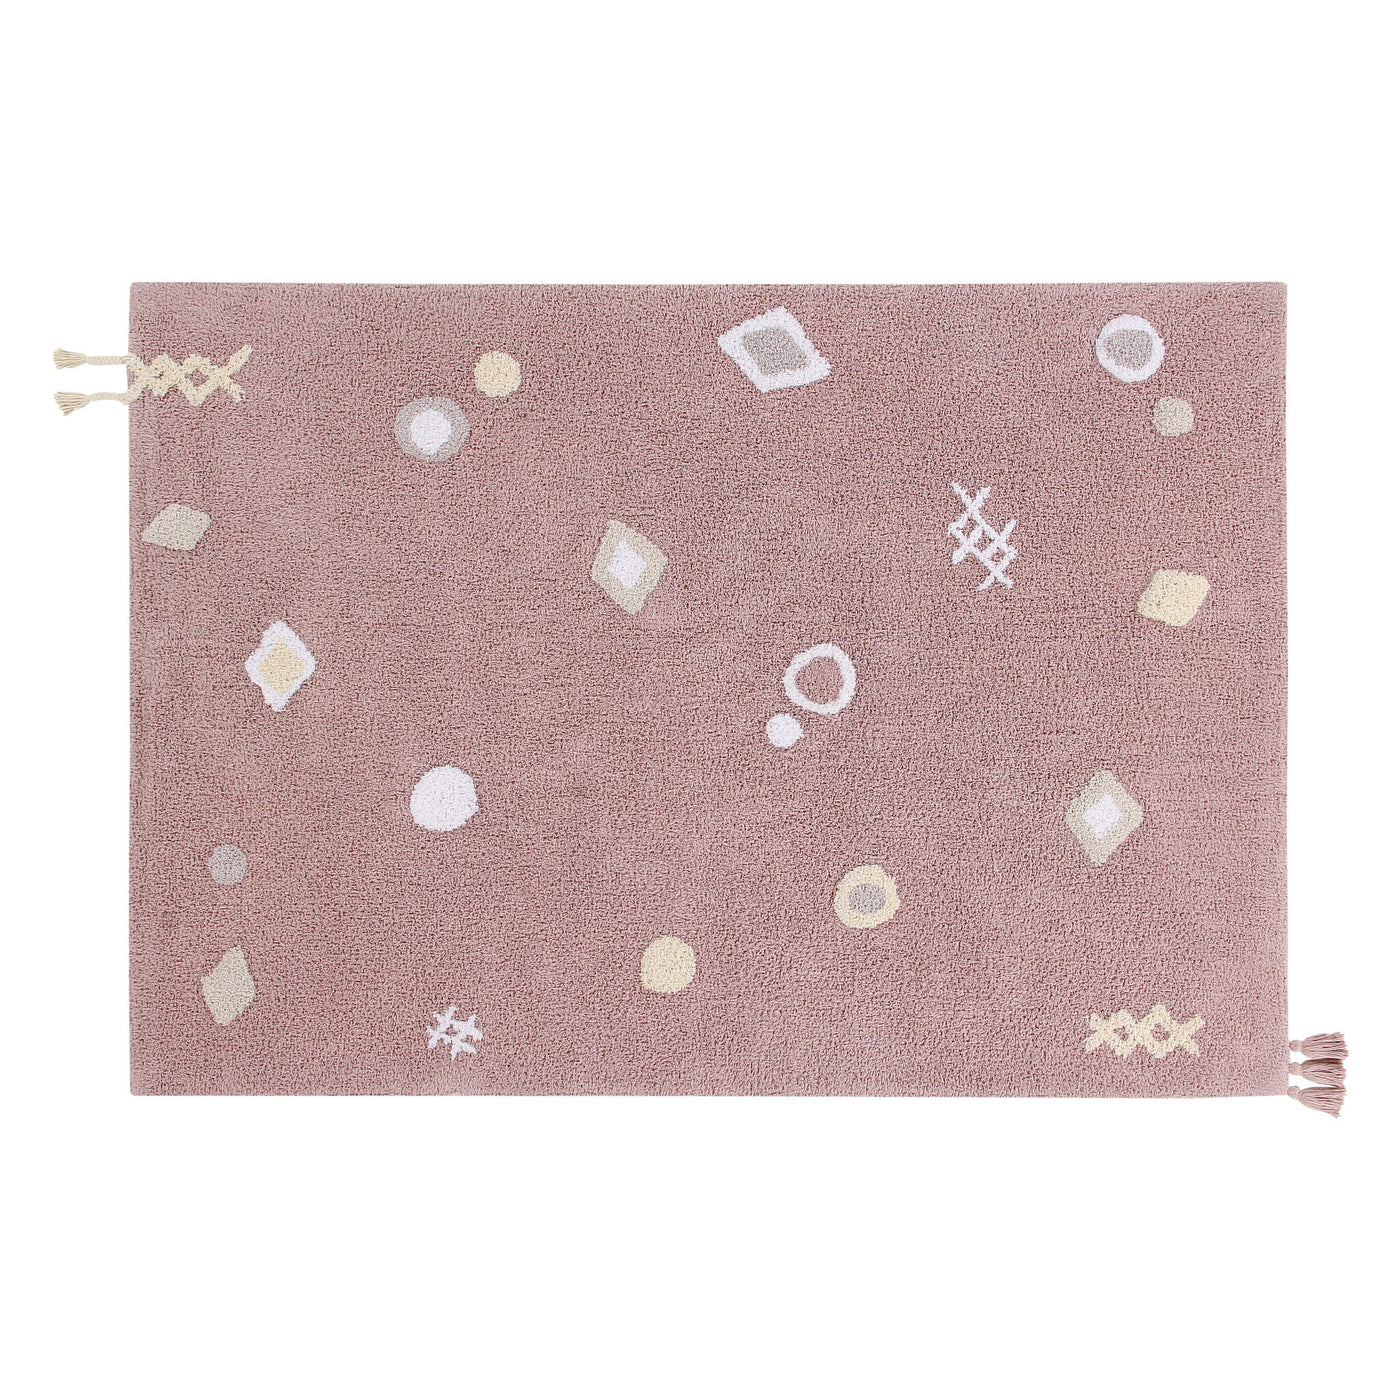 Pyjama Party Washable Rug - Noah